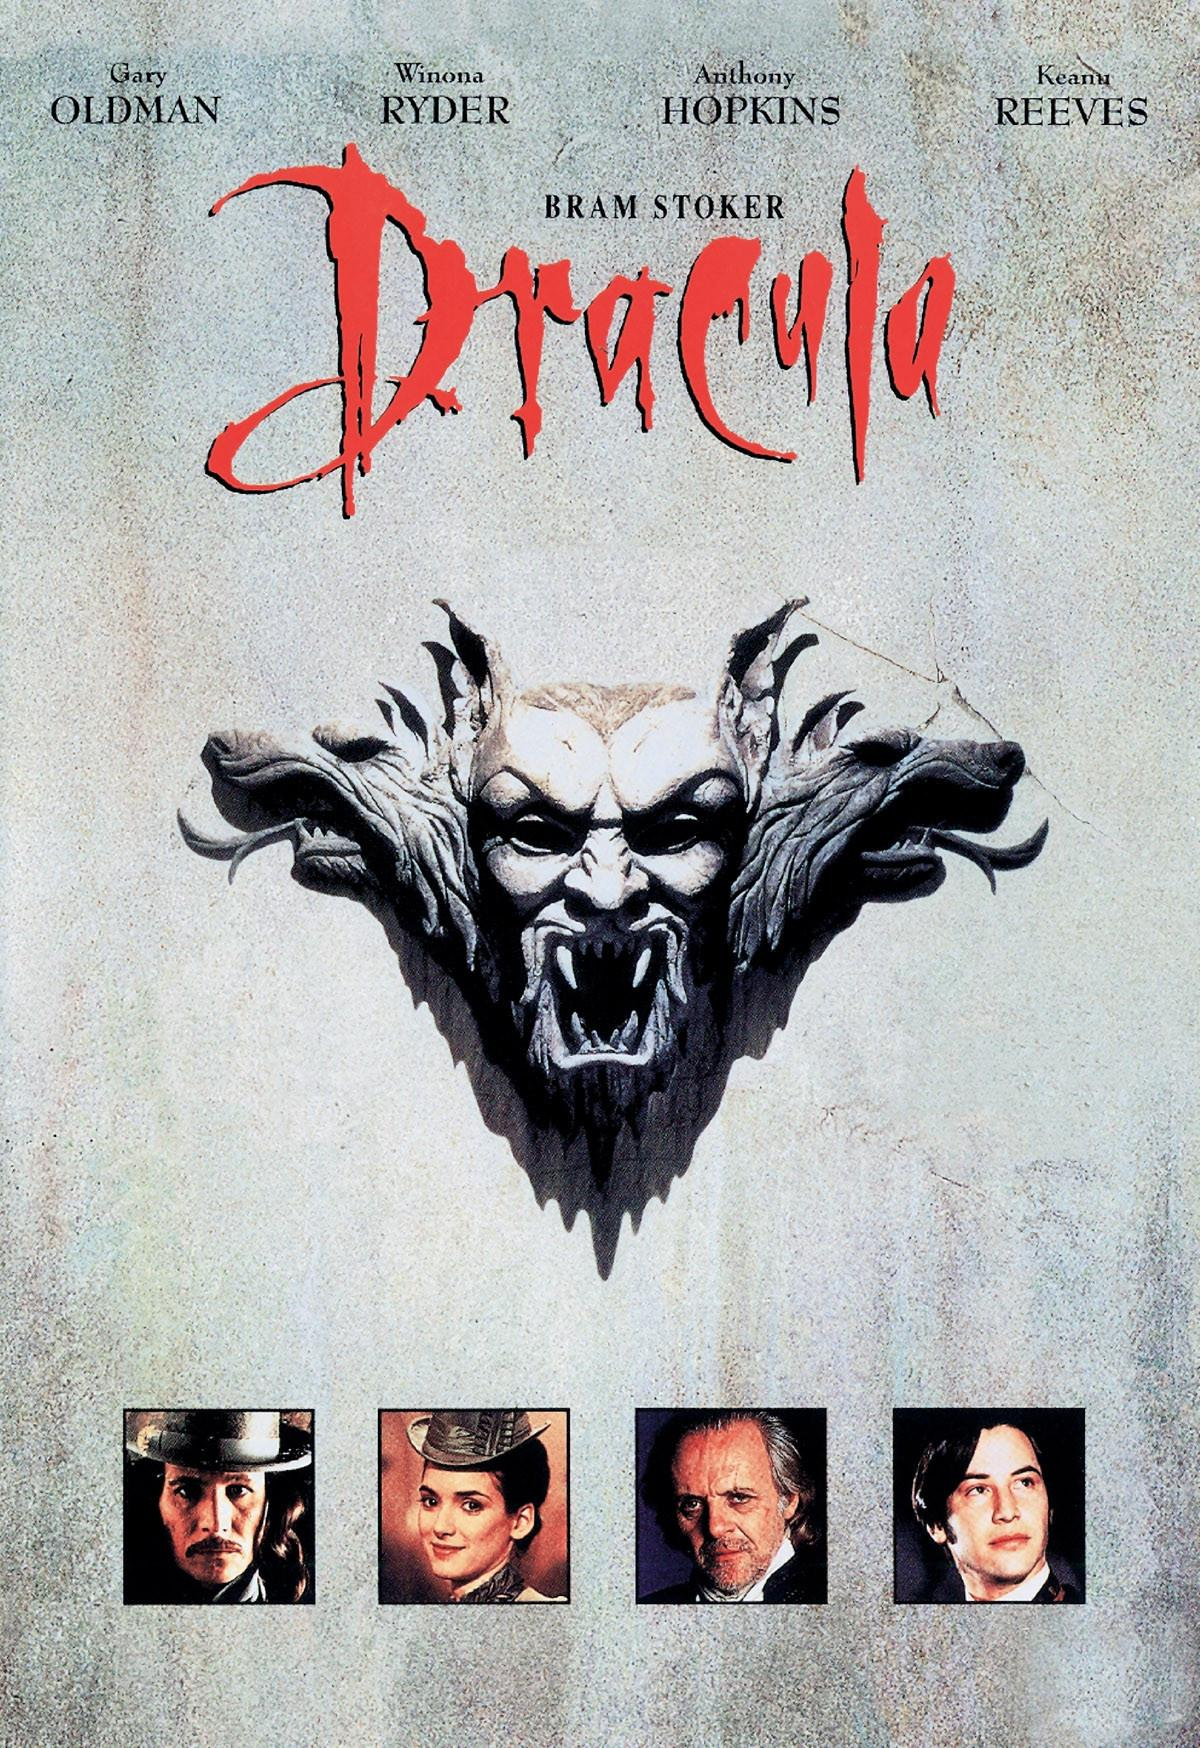 essay on dracula film